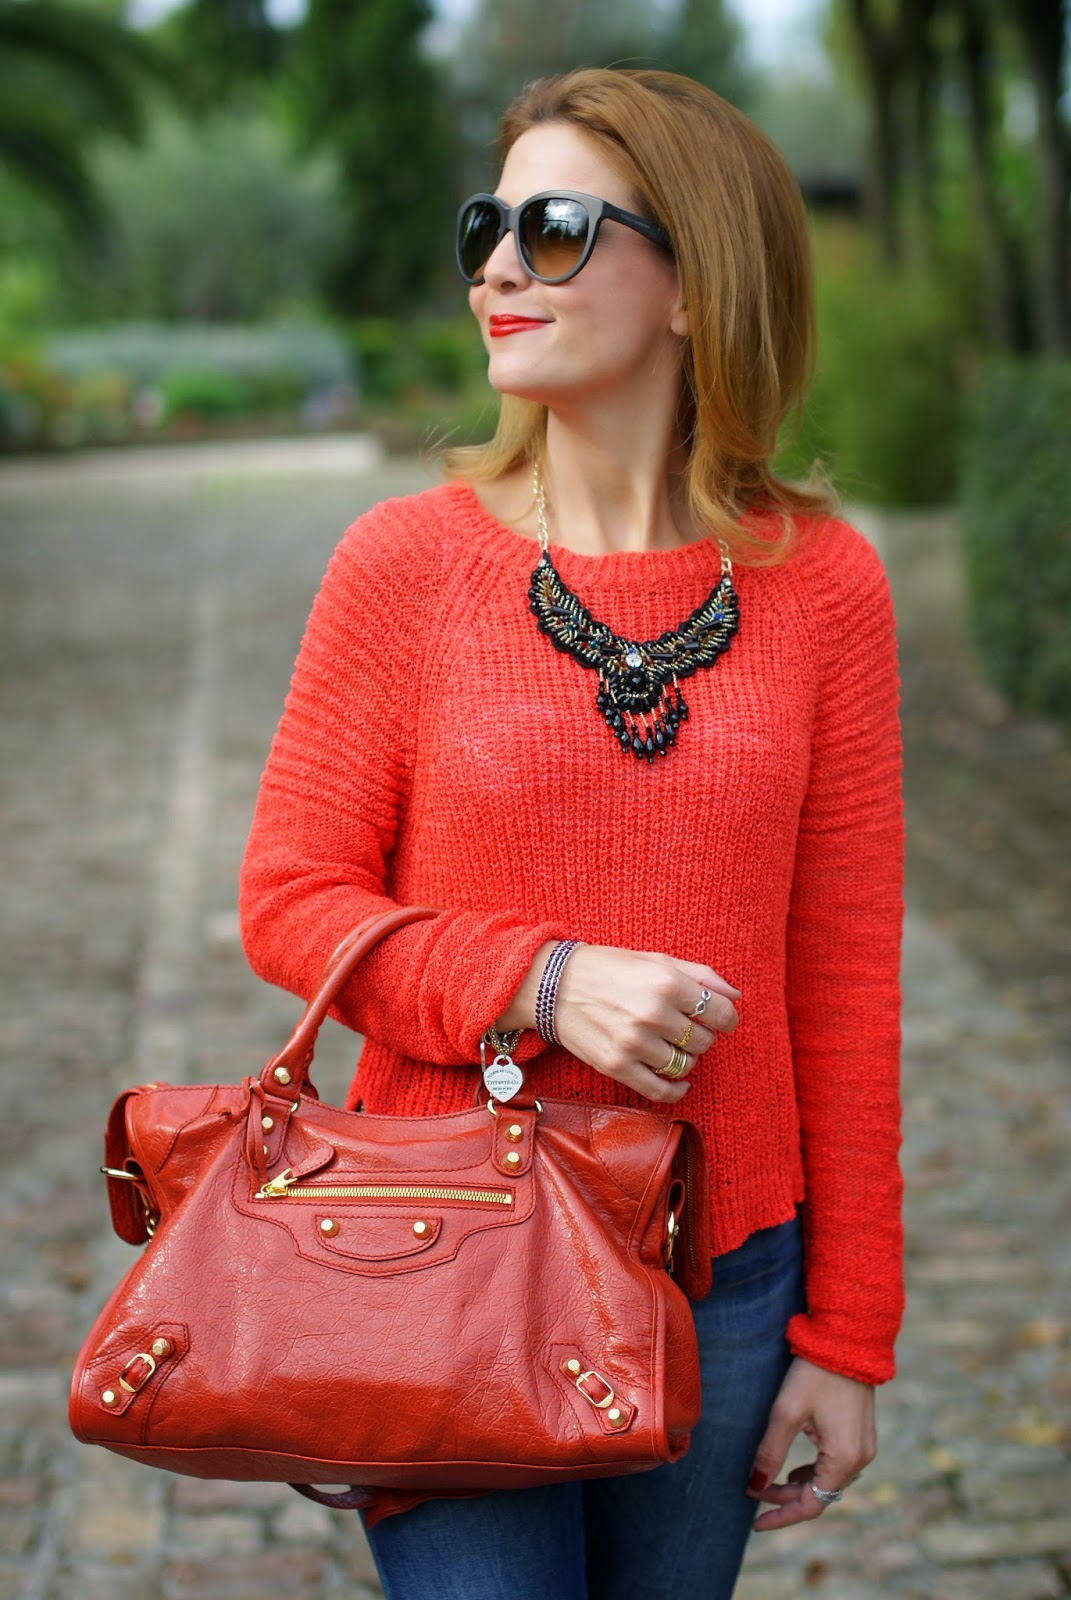 Balenciaga City rouge ambre bag, Luca Barra jewels, Fashion and Cookies, fashion blogger